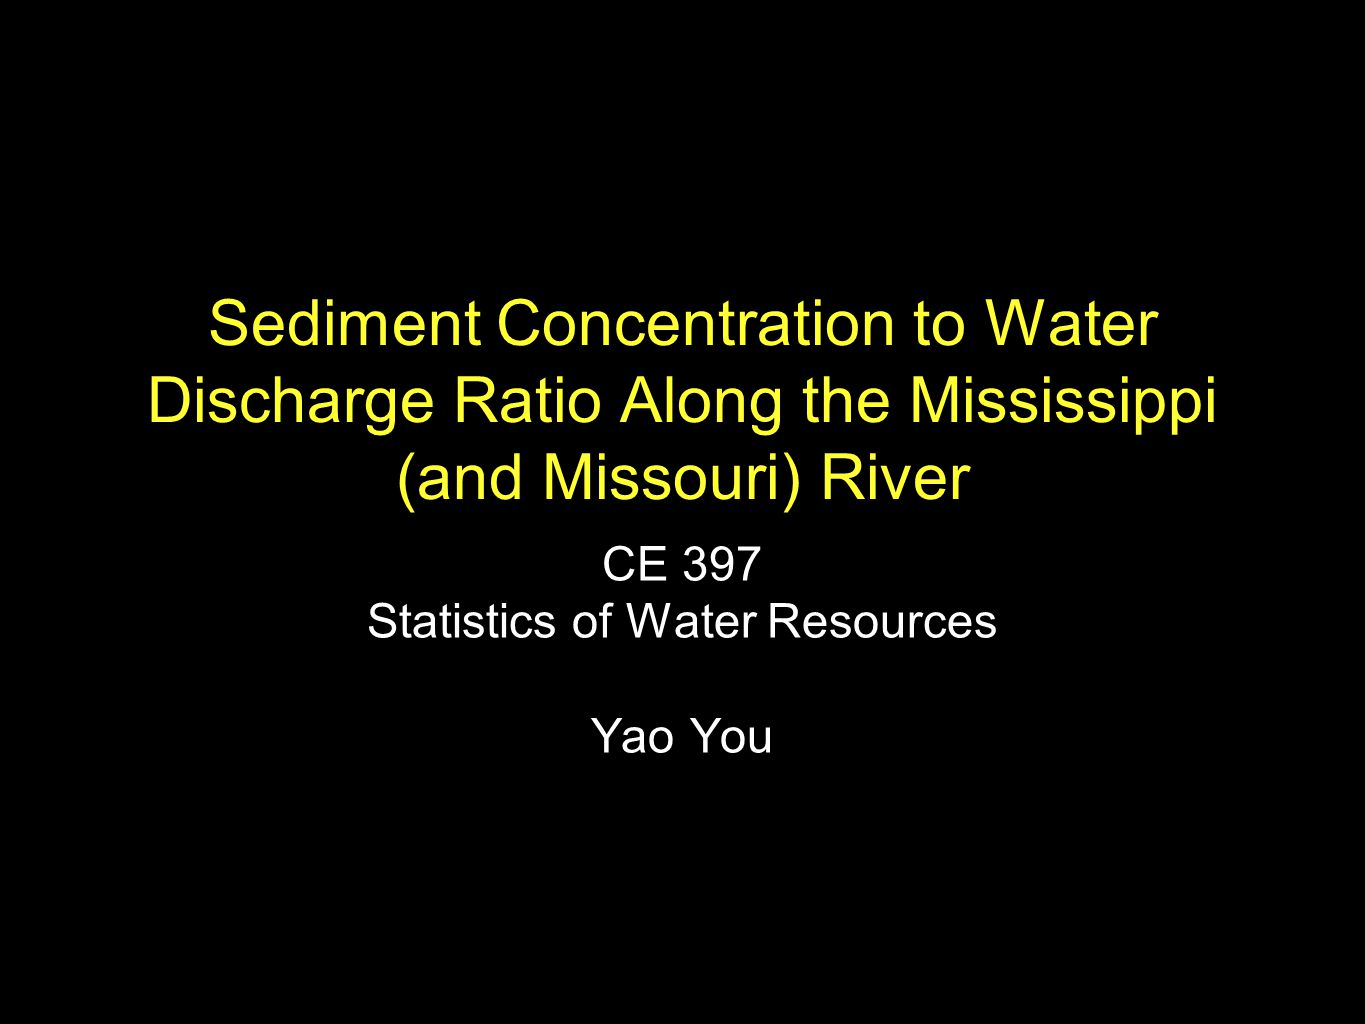 Sediment Concentration to Water Discharge Ratio Along the Mississippi (and Missouri) River CE 397 Statistics of Water Resources Yao You